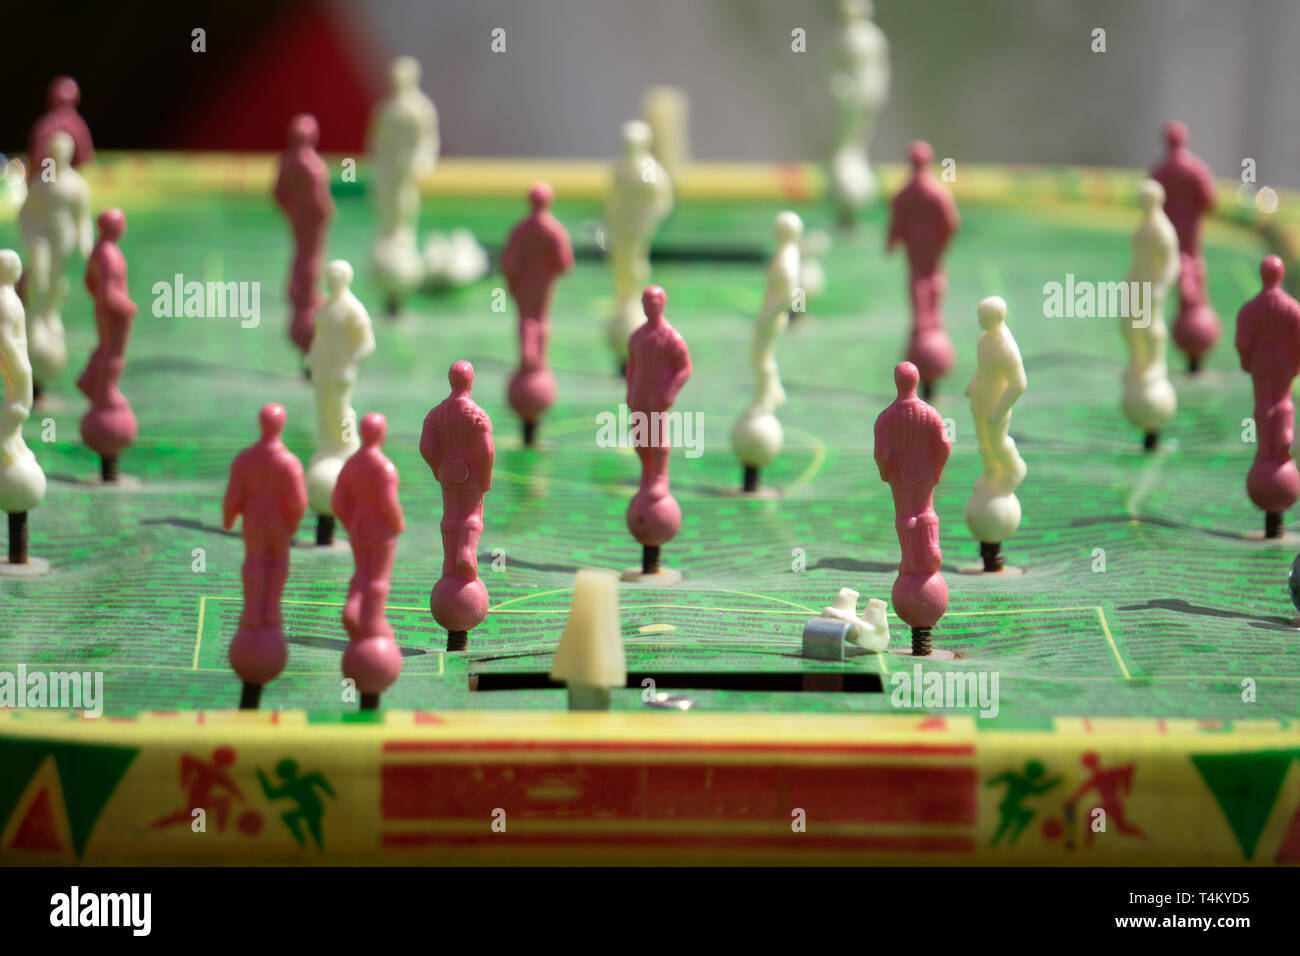 Detail of girl's hands playing the foosball vintage table match. Color toned image. Concept photo of leading the company. - Stock Image